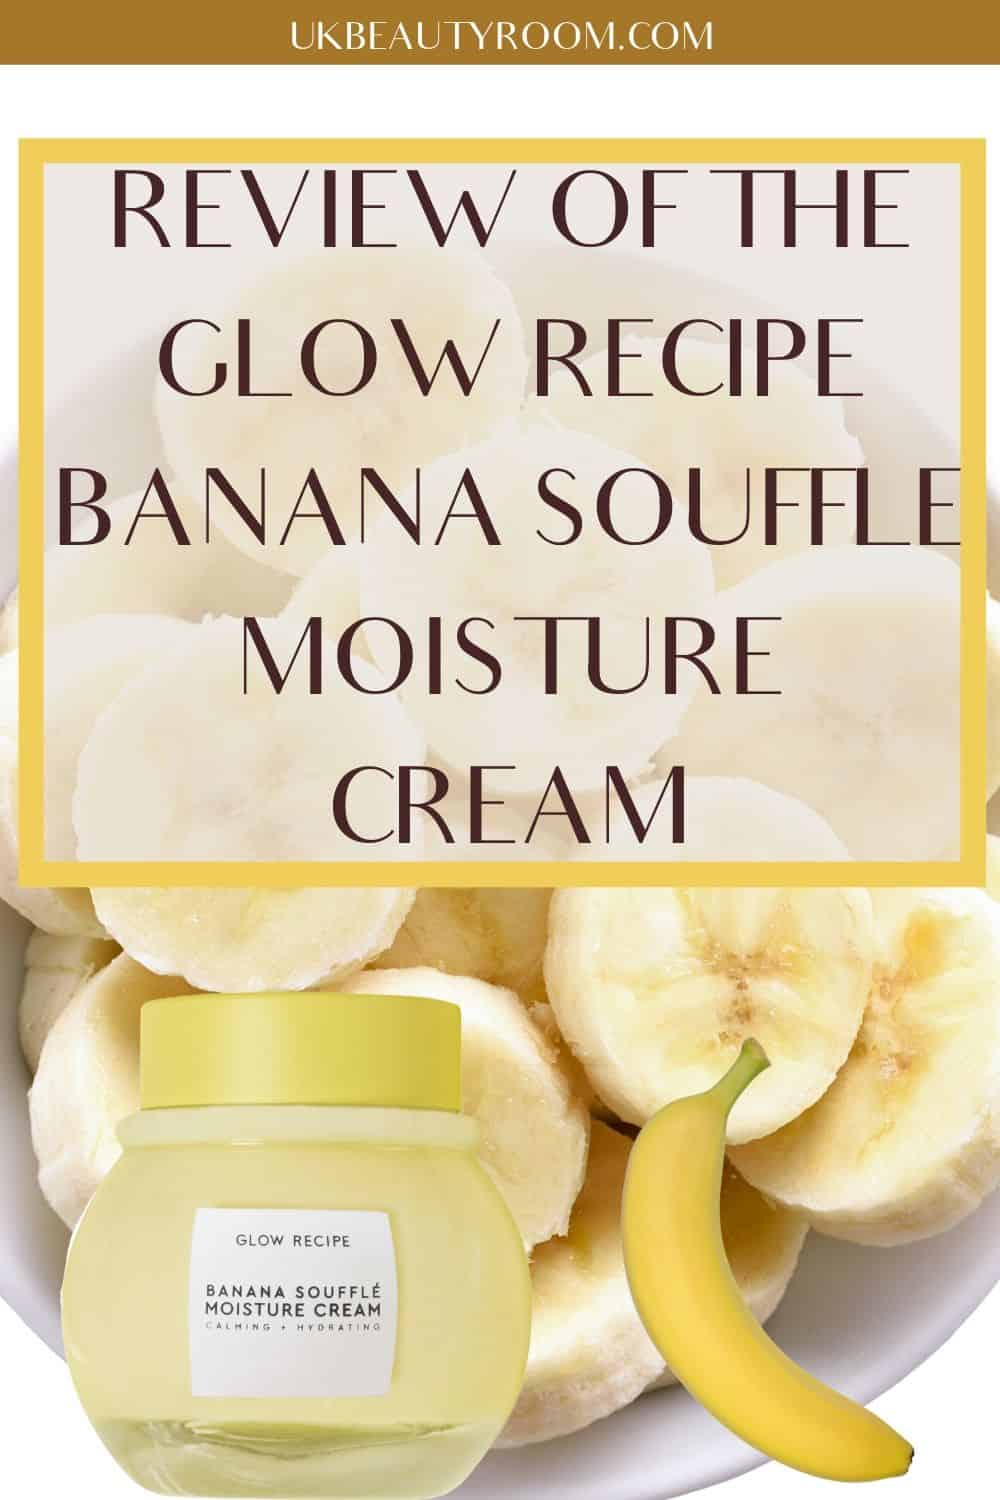 The Banana Soufflé Moisture Cream is the latest product by Glow Recipe, a Korean brand that makes fruit-themed skincare. The brand's cult product is their Watermelon Glow Sleeping Mask and they are also known for their Blueberry Bounce Gentle Cleanser, Pineapple-C Bright Serum and Avocado Melt Sleeping Mask. This moisturizer is very light and would suit acne prone, oily and dry skin. It is one of the best beauty skincare products I have tested. #kbeauty #beauty #skincare